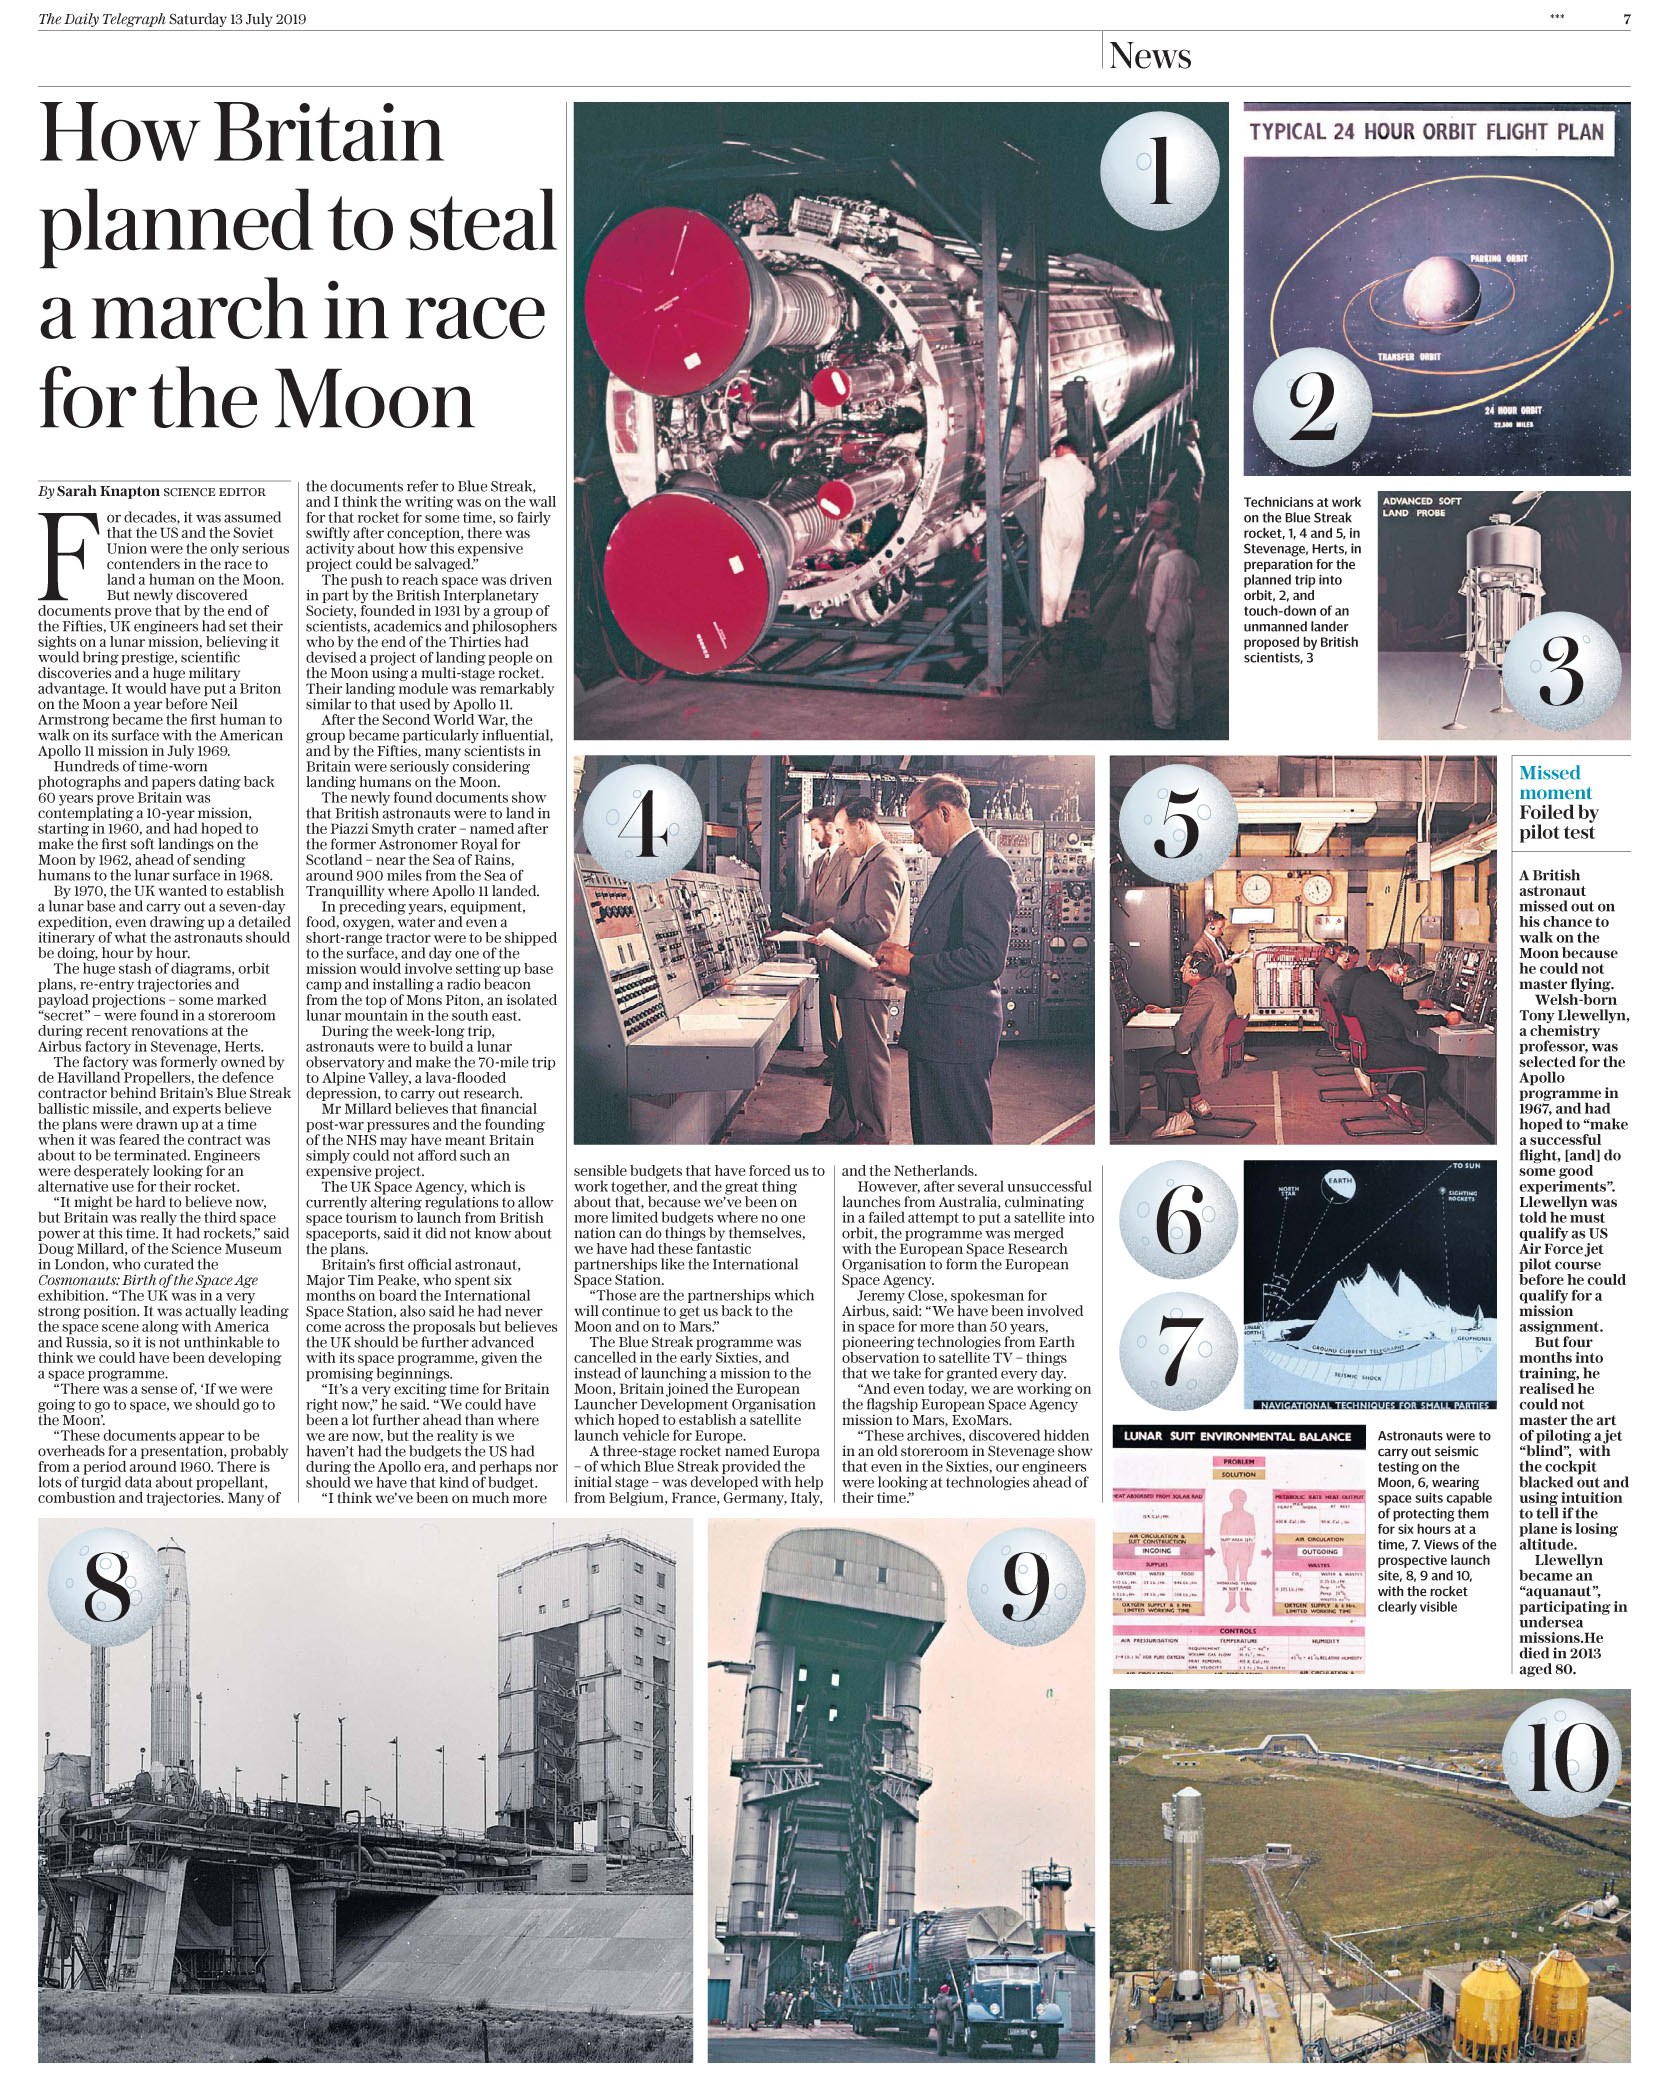 The Daily Telegraph  July 13 2019 Space.jpg